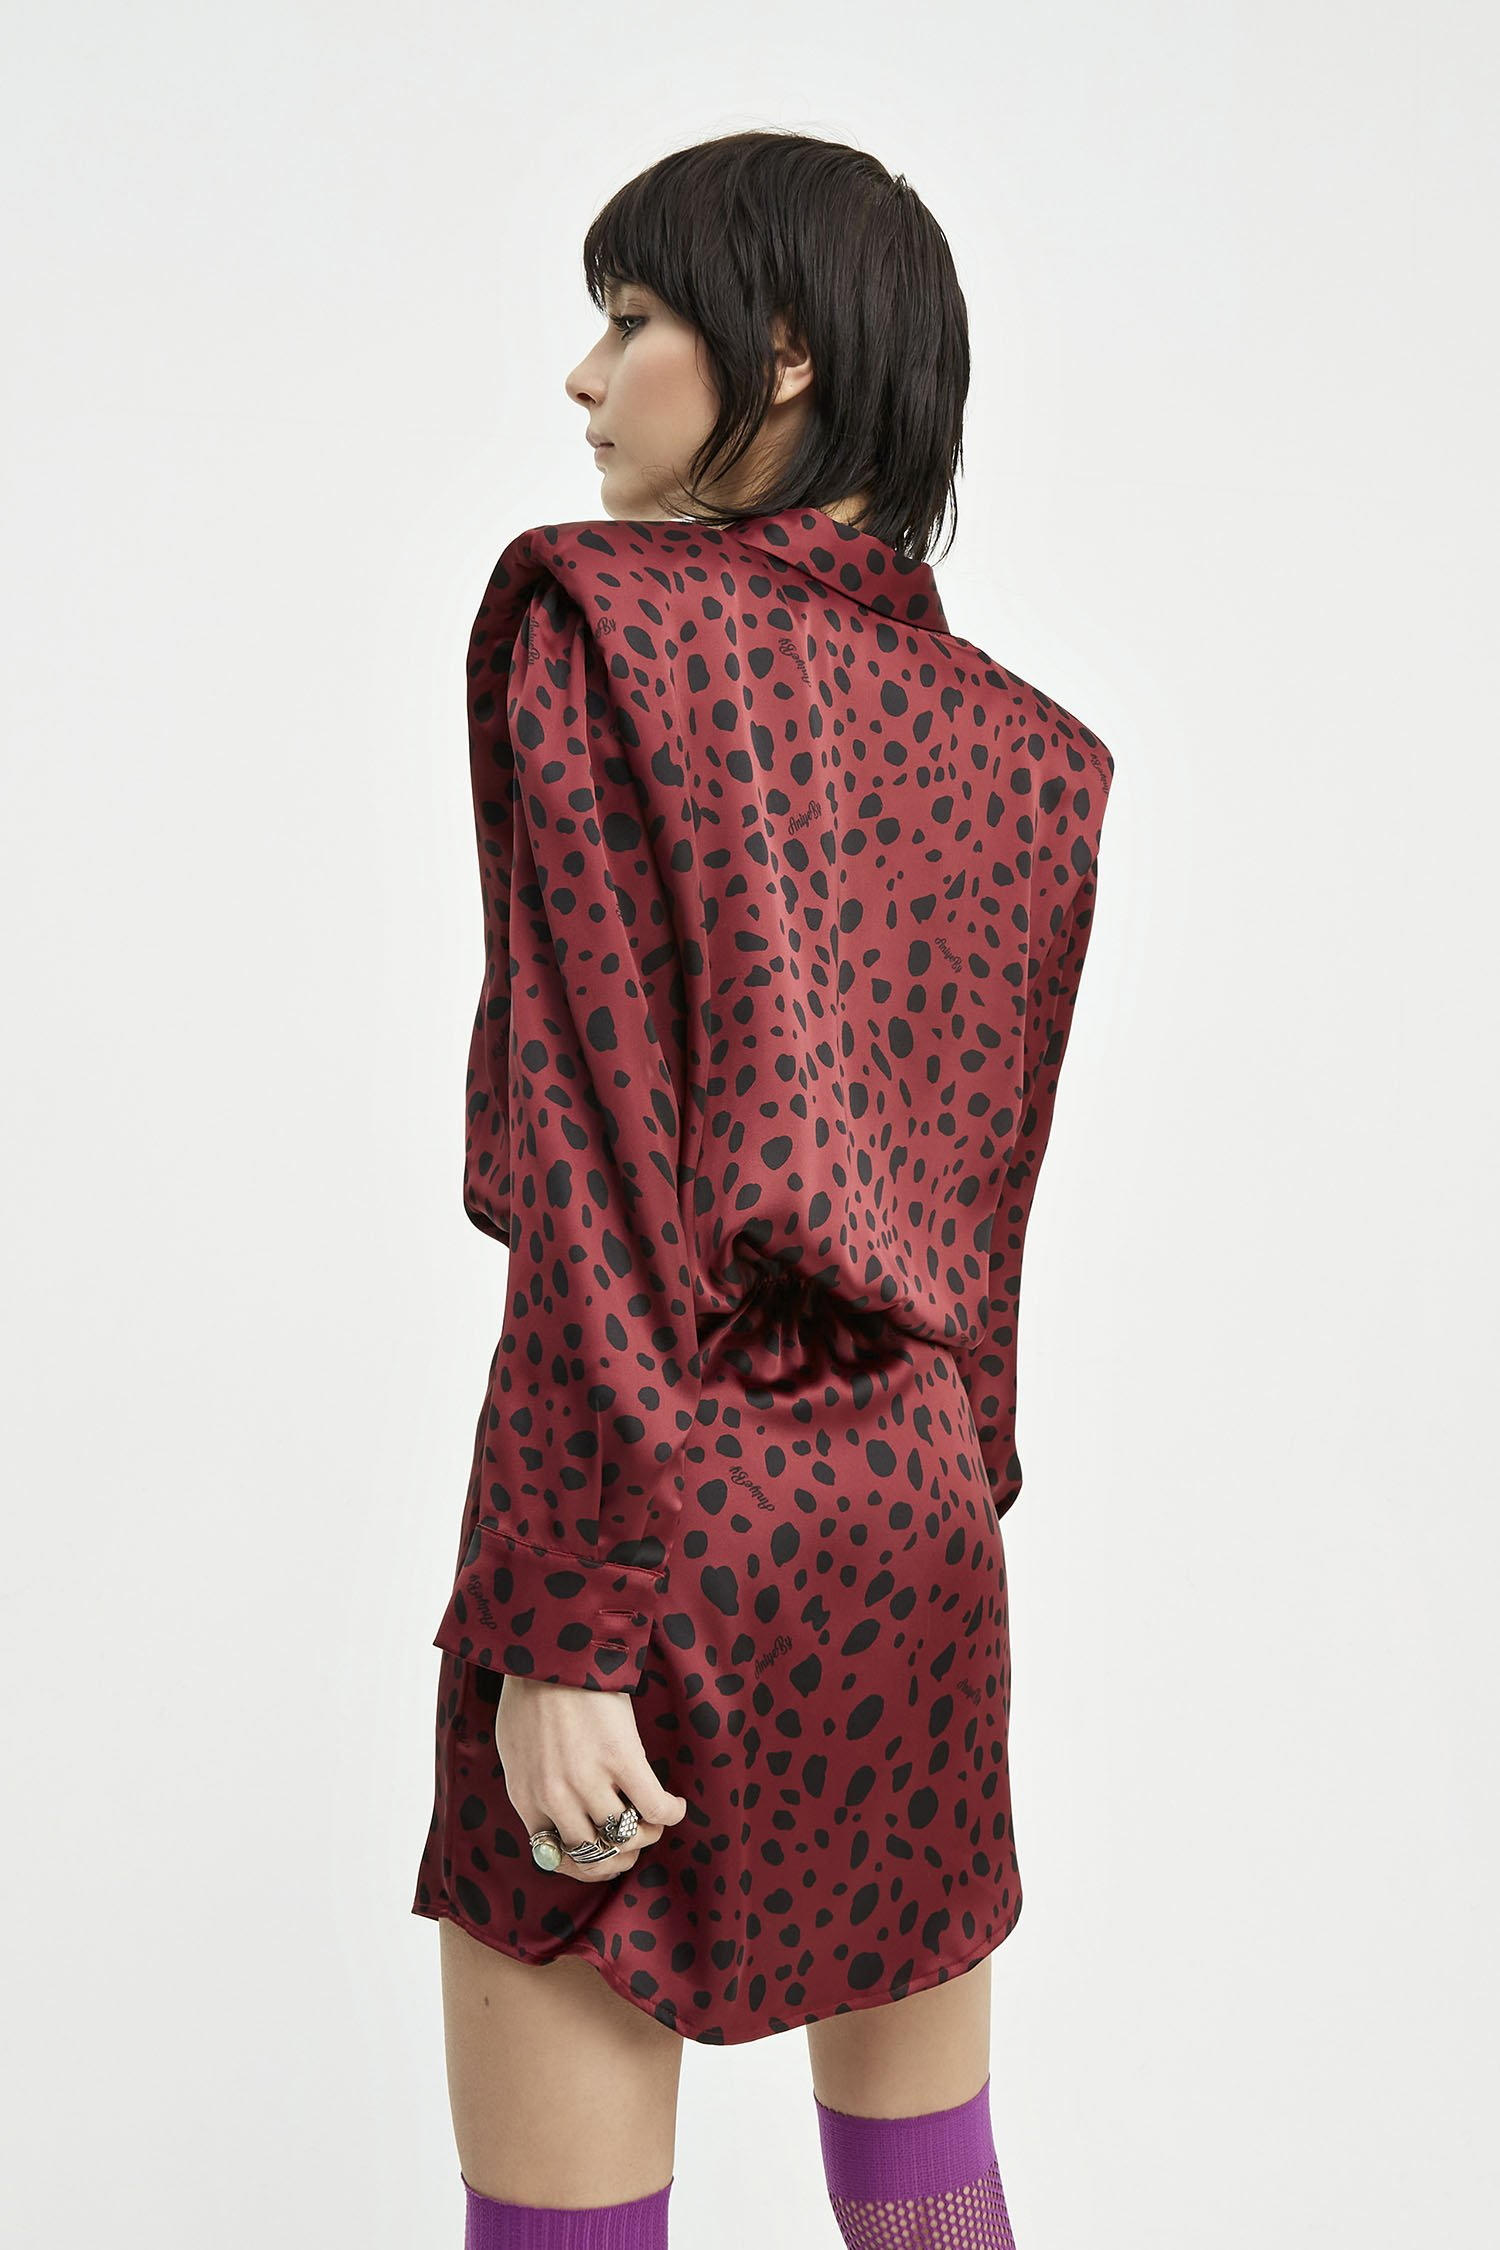 SHOPPING ON LINE ANIYE BY  DRESS MAKKY NEW COLLECTION  WOMEN'S FALL/WINTER 2022